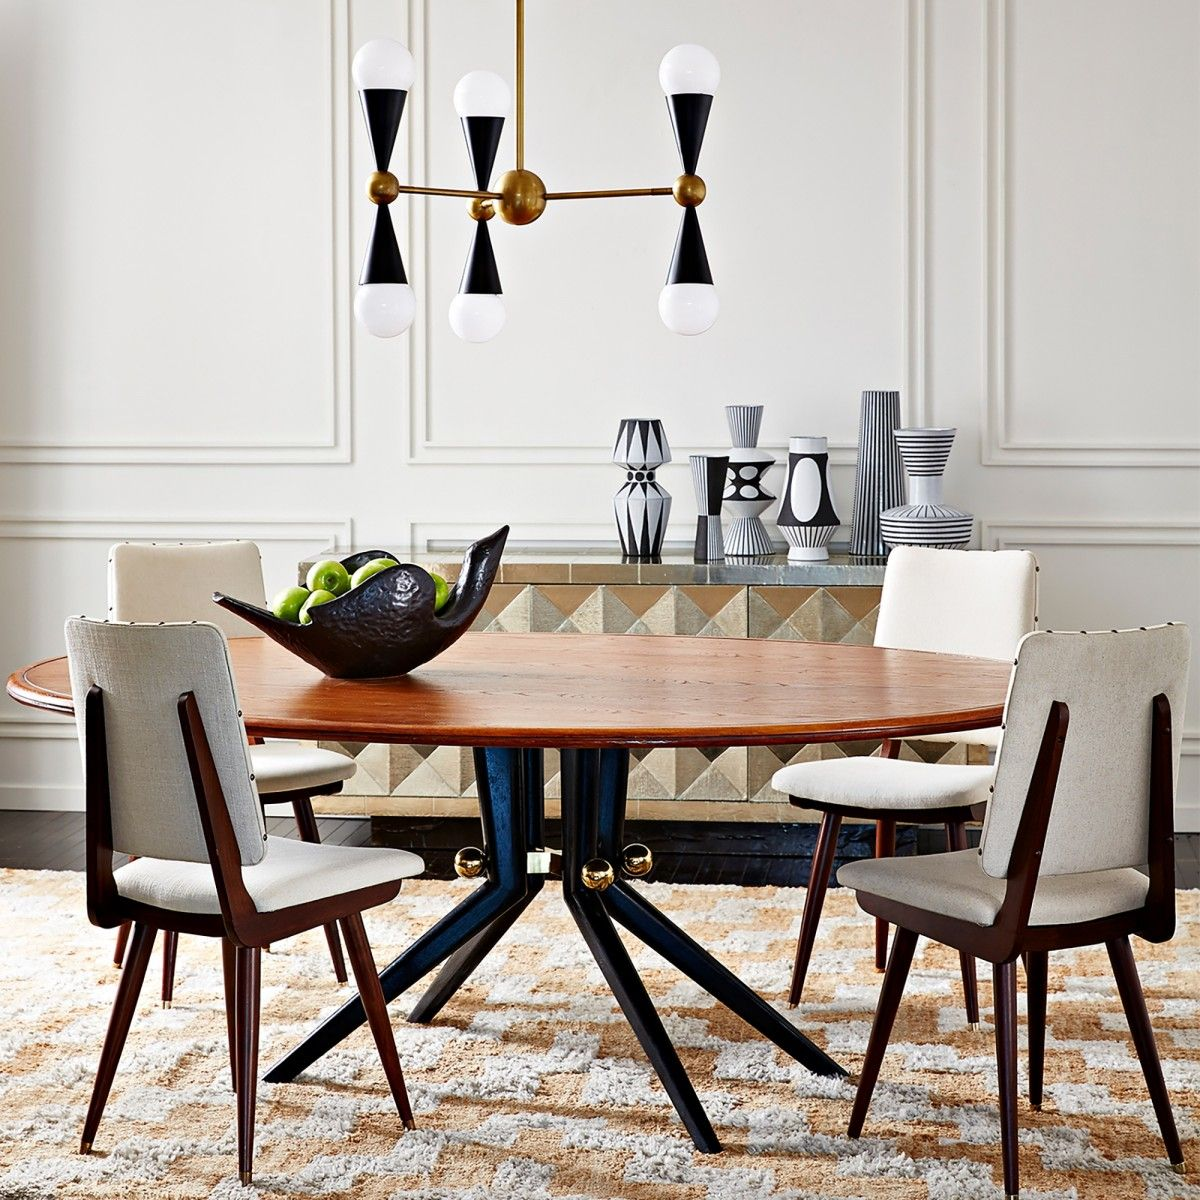 Dining Room Design Inspirations By Jonathan Adler (2)